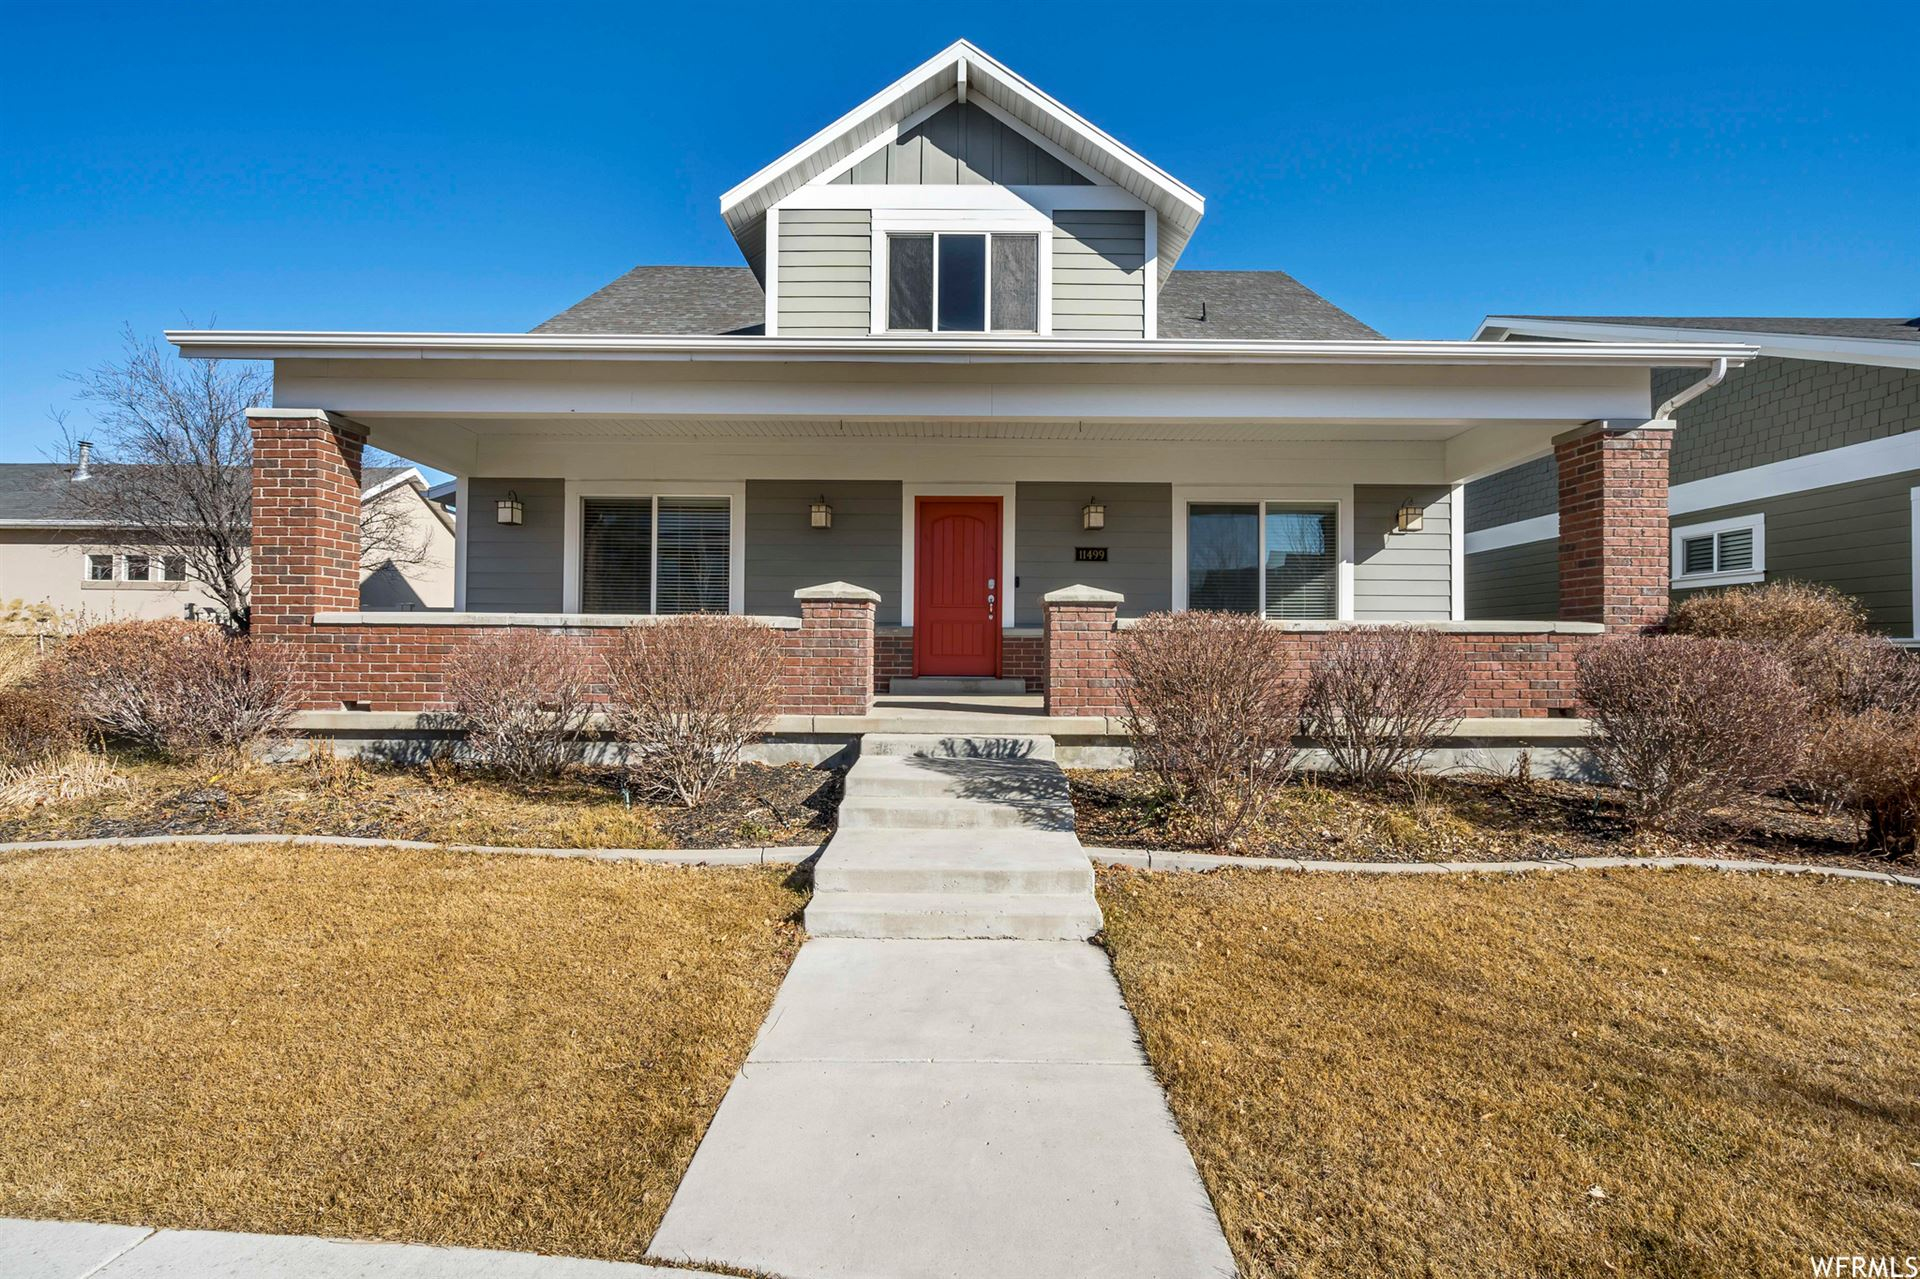 Photo of 11499 S WEXFORD W WAY, South Jordan, UT 84009 (MLS # 1721303)